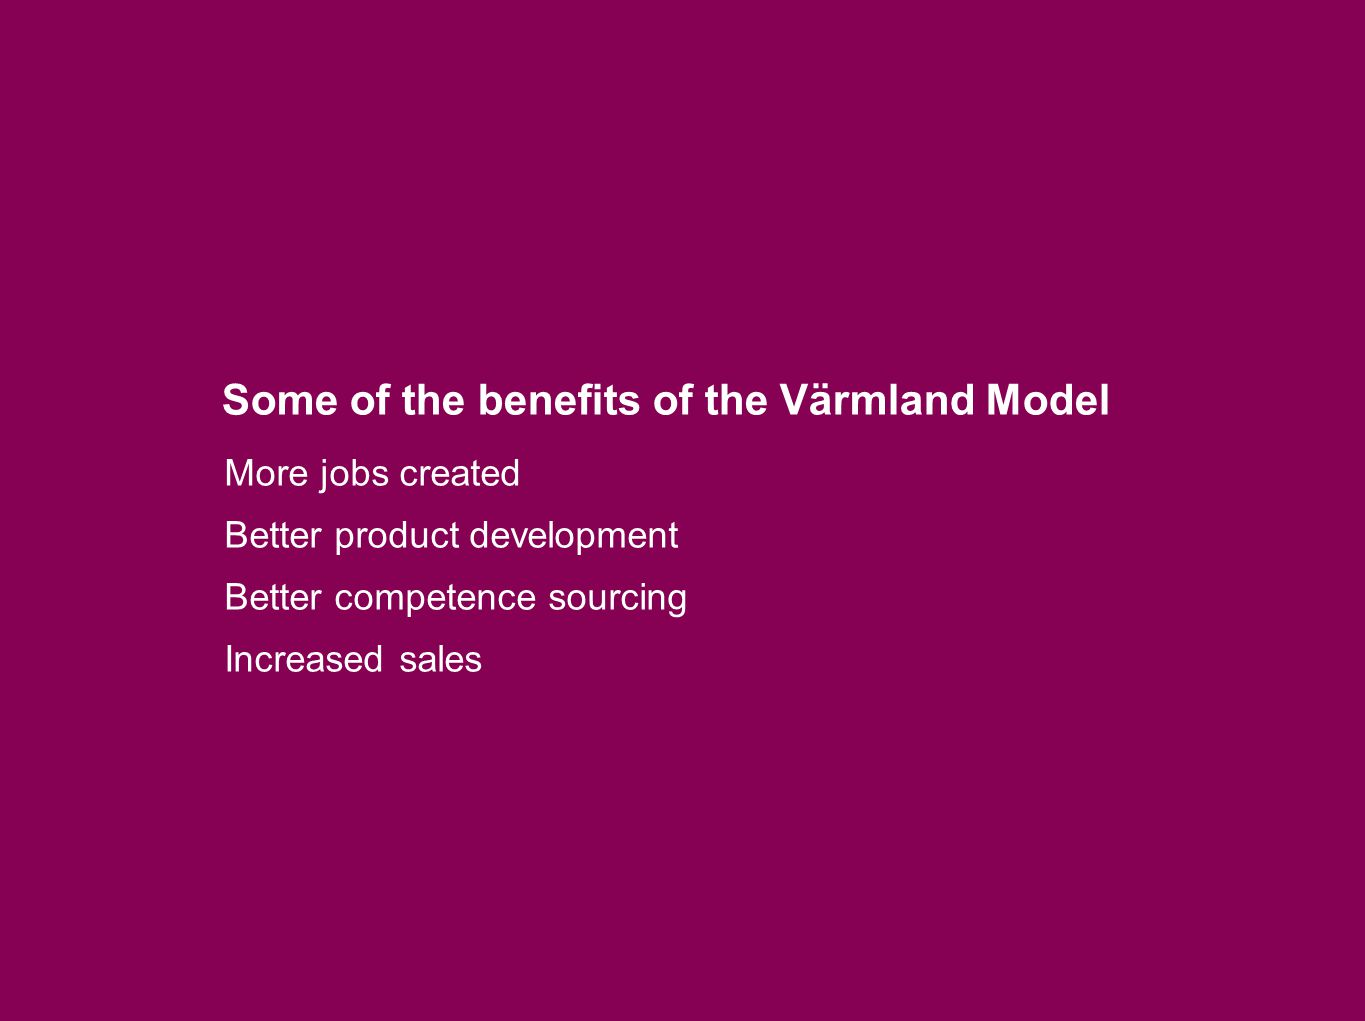 Some of the benefits of the Värmland Model